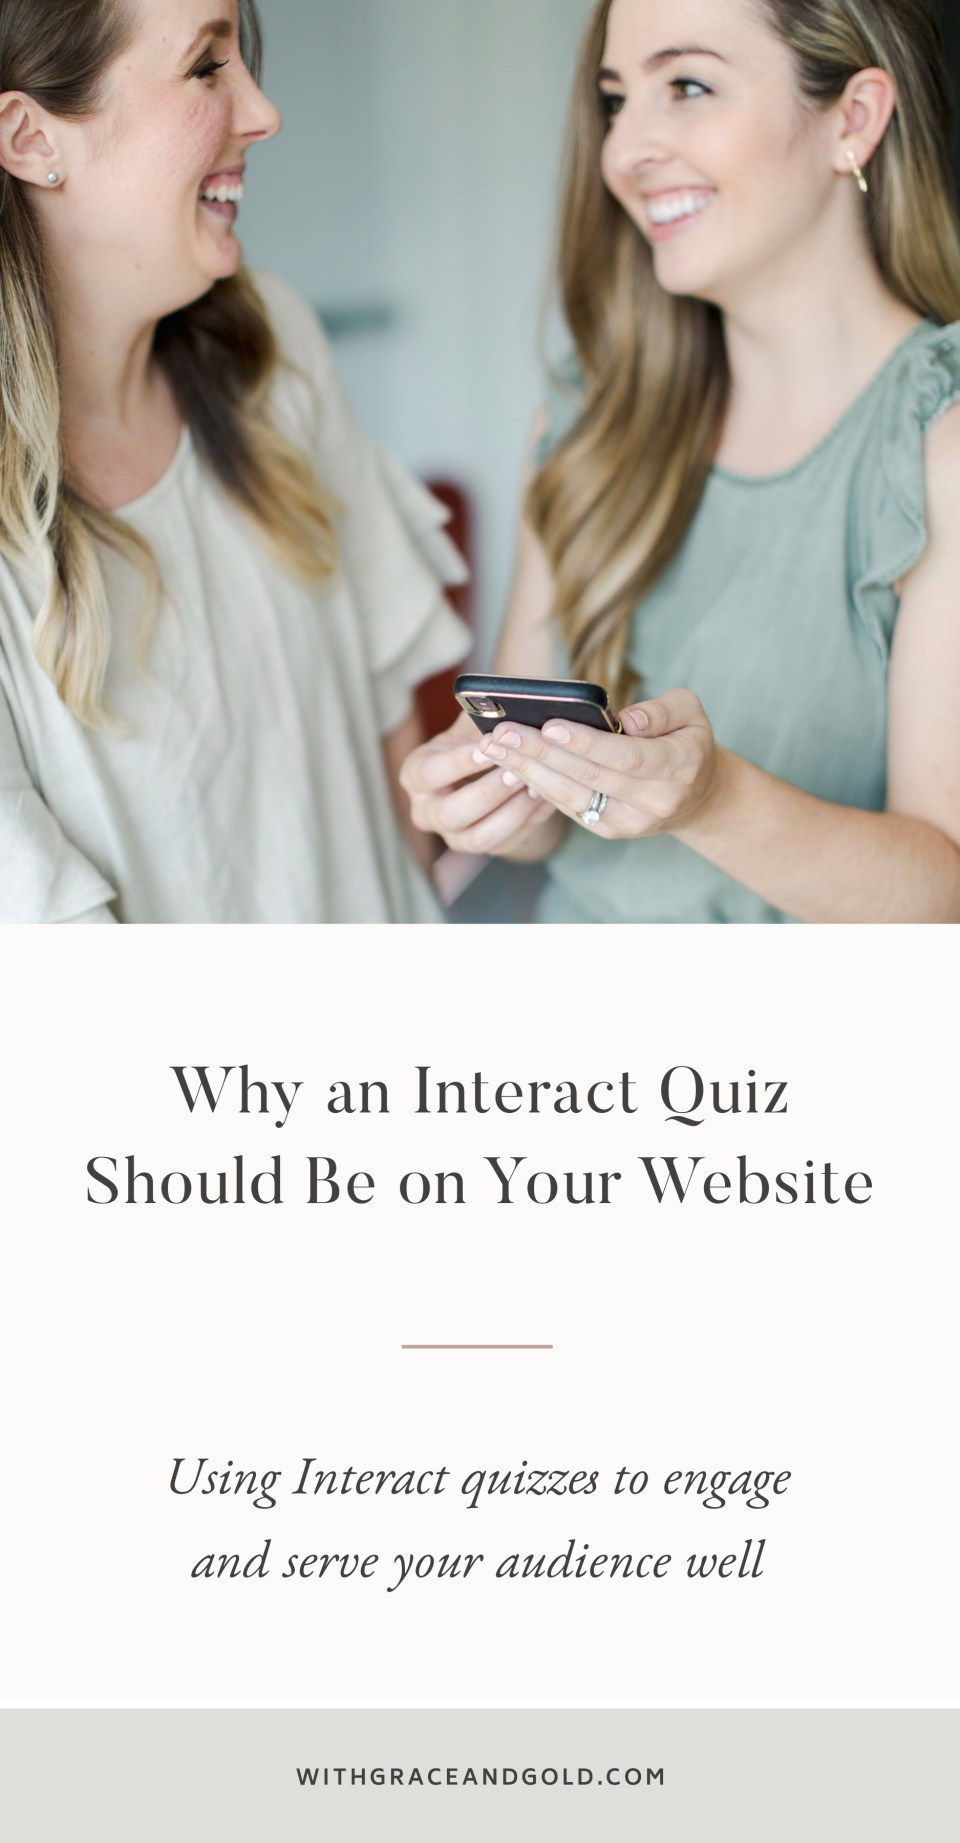 Why an Interact Quiz Should Be On Your Website - Interact Quiz Review - Interact Quizzes - Quiz for Your Website - With Grace and Gold - Web Design for Creative Women in Business